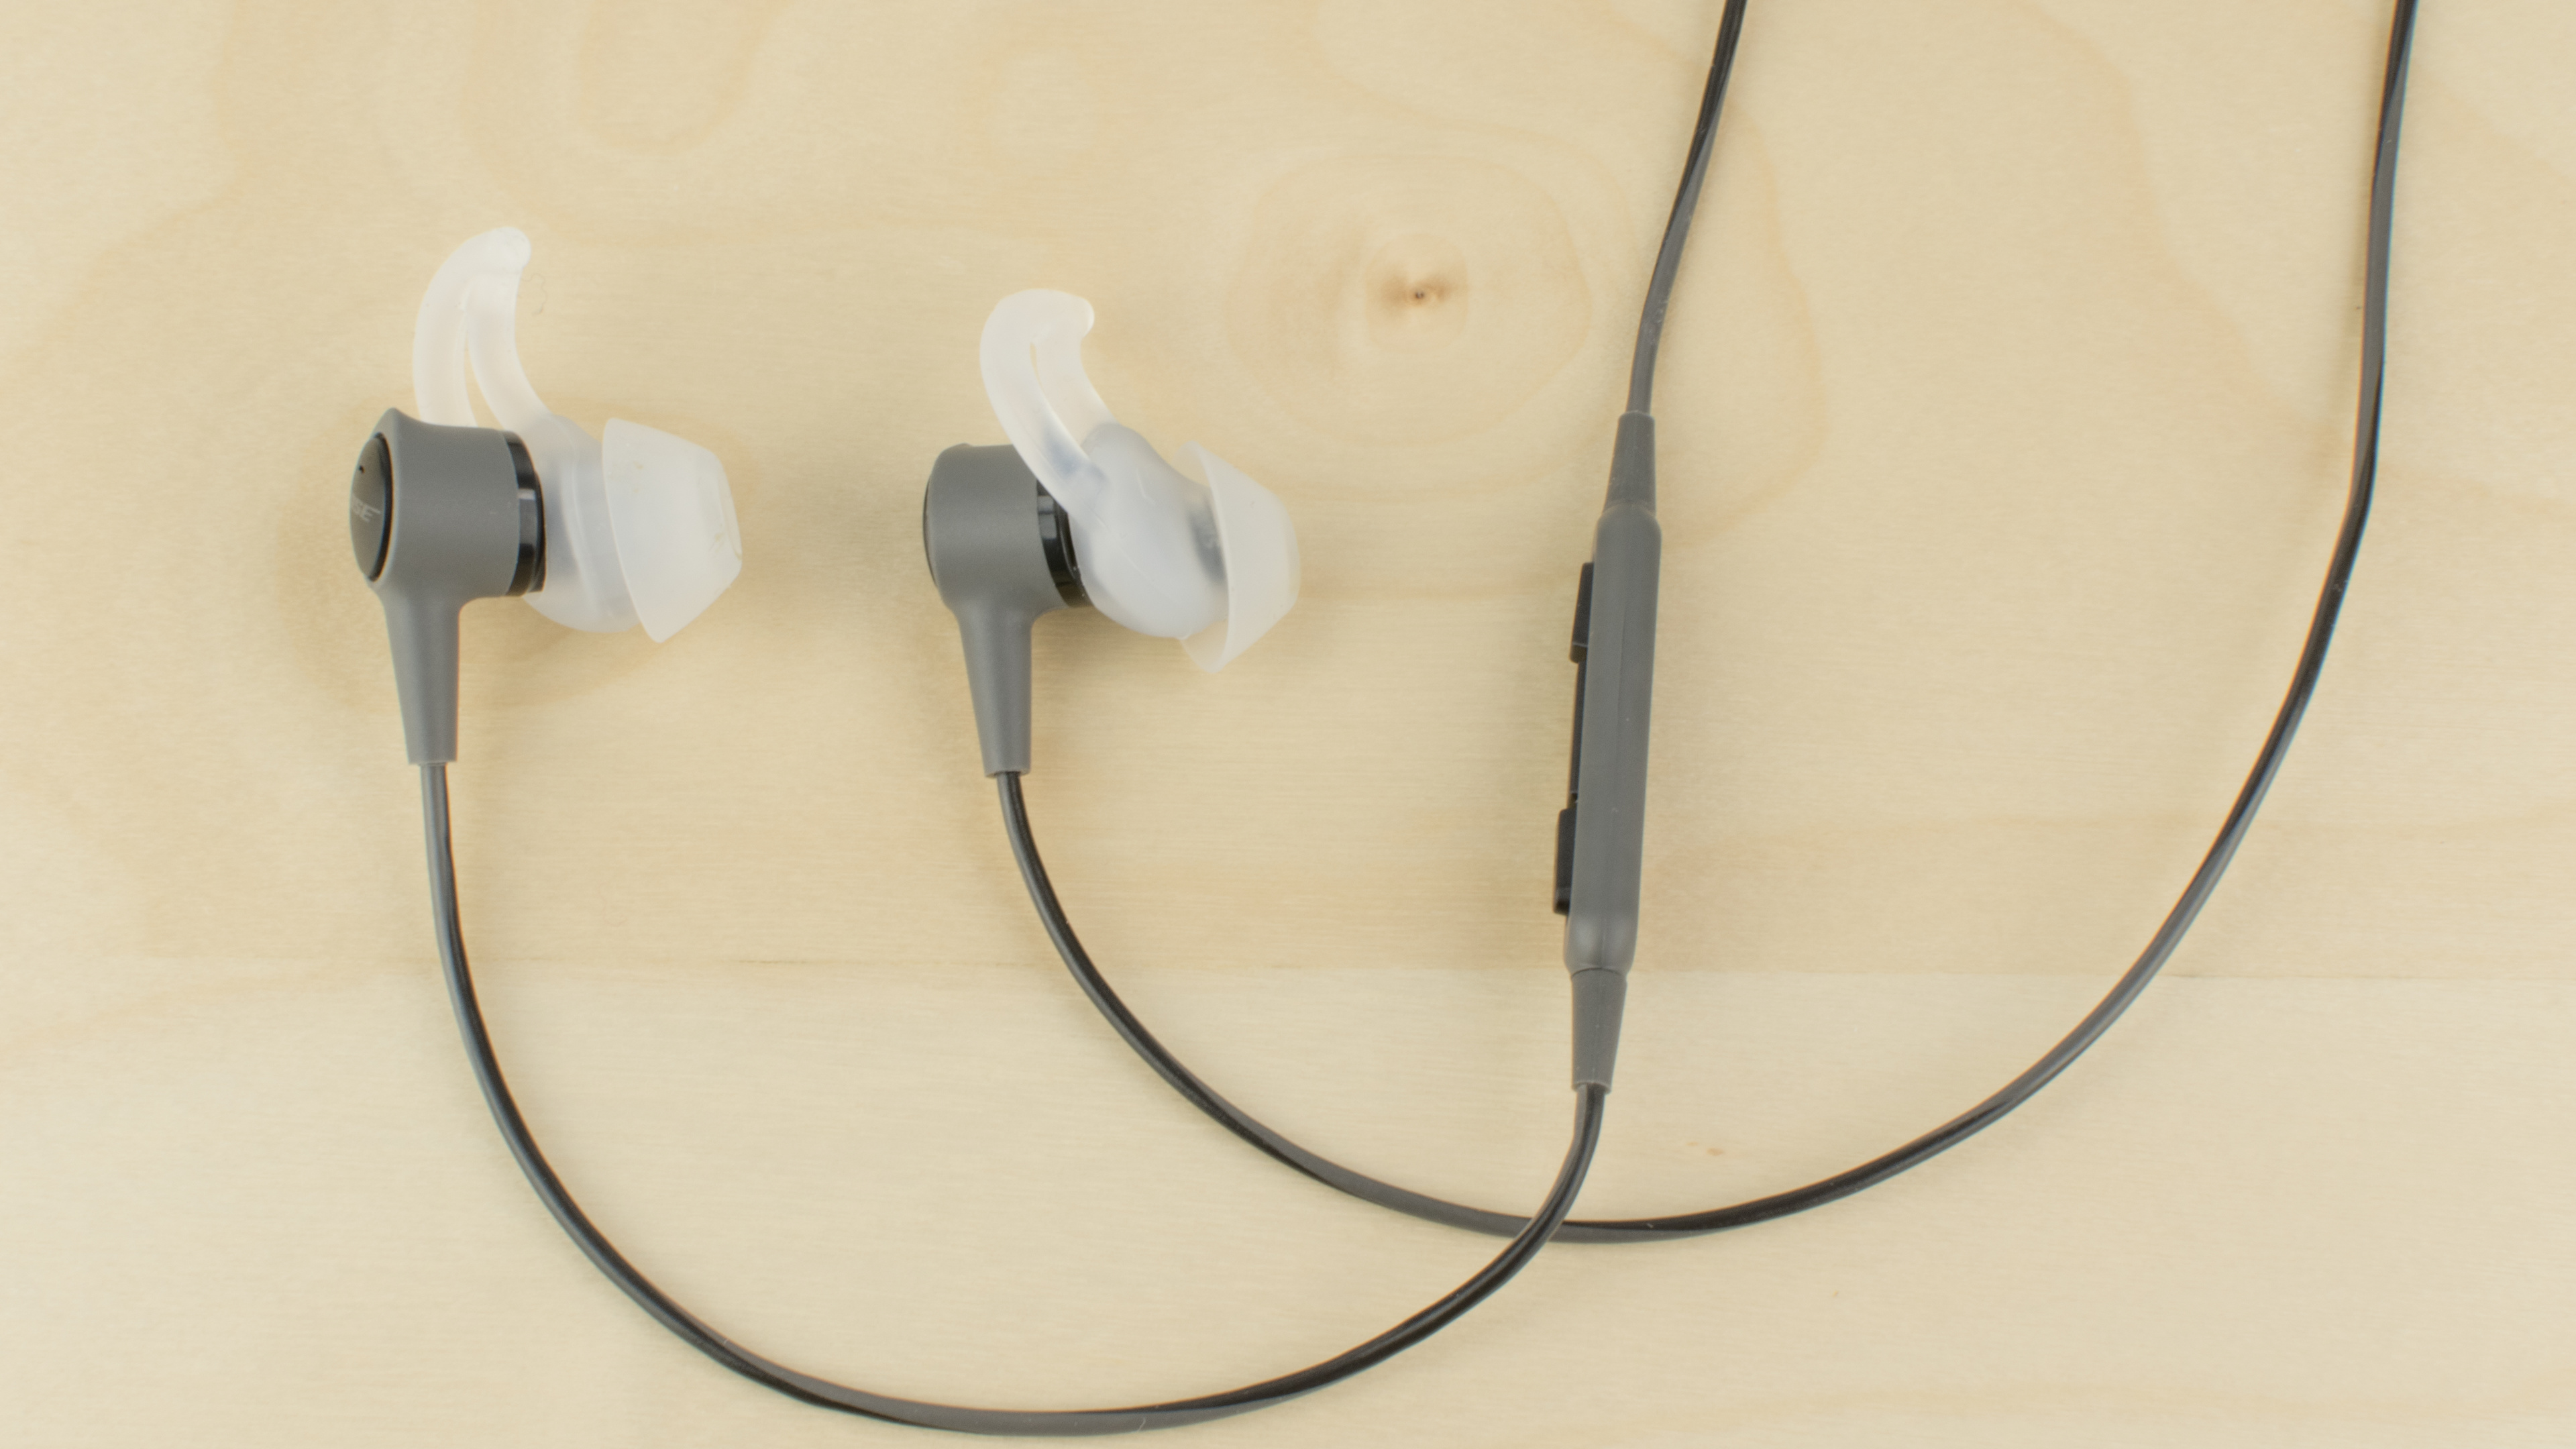 Bose Soundtrue Ultra In Ear Review Wiring Diagram On Get Free Image About Build Quality Picture